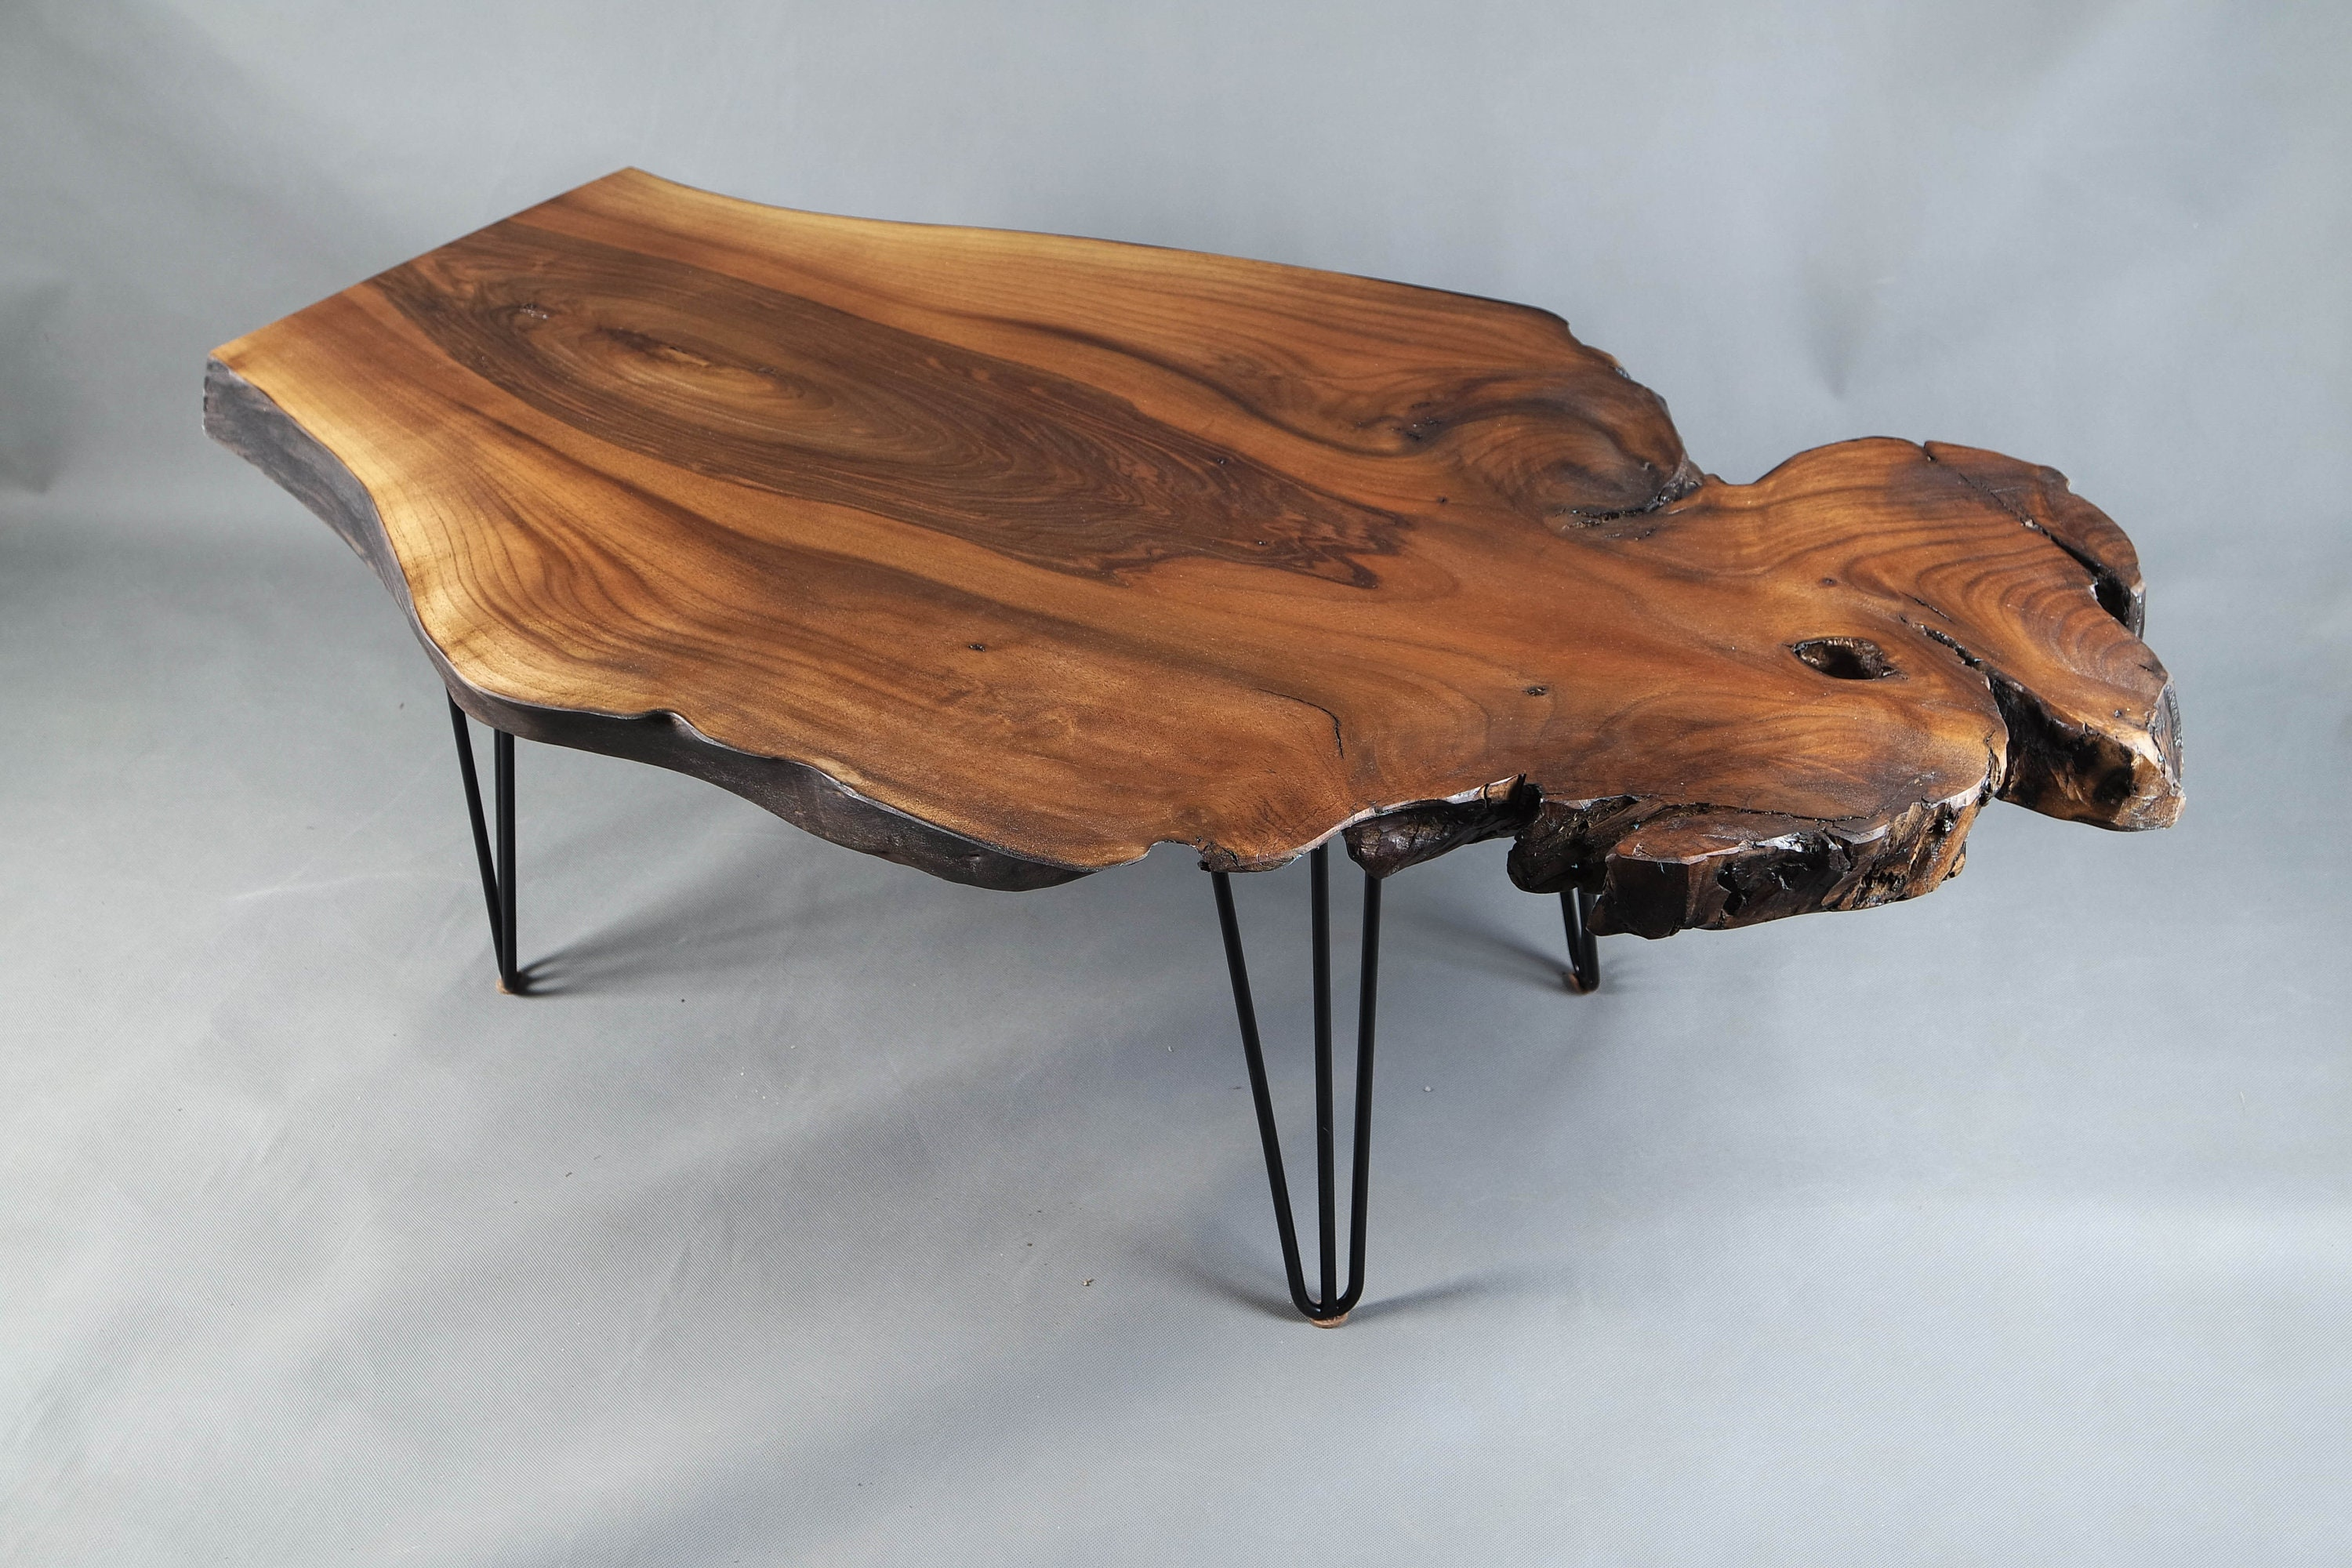 chaussures de sport 7d0b1 18b9f Rustic Coffee Table, Live Edge Table, Table Basse